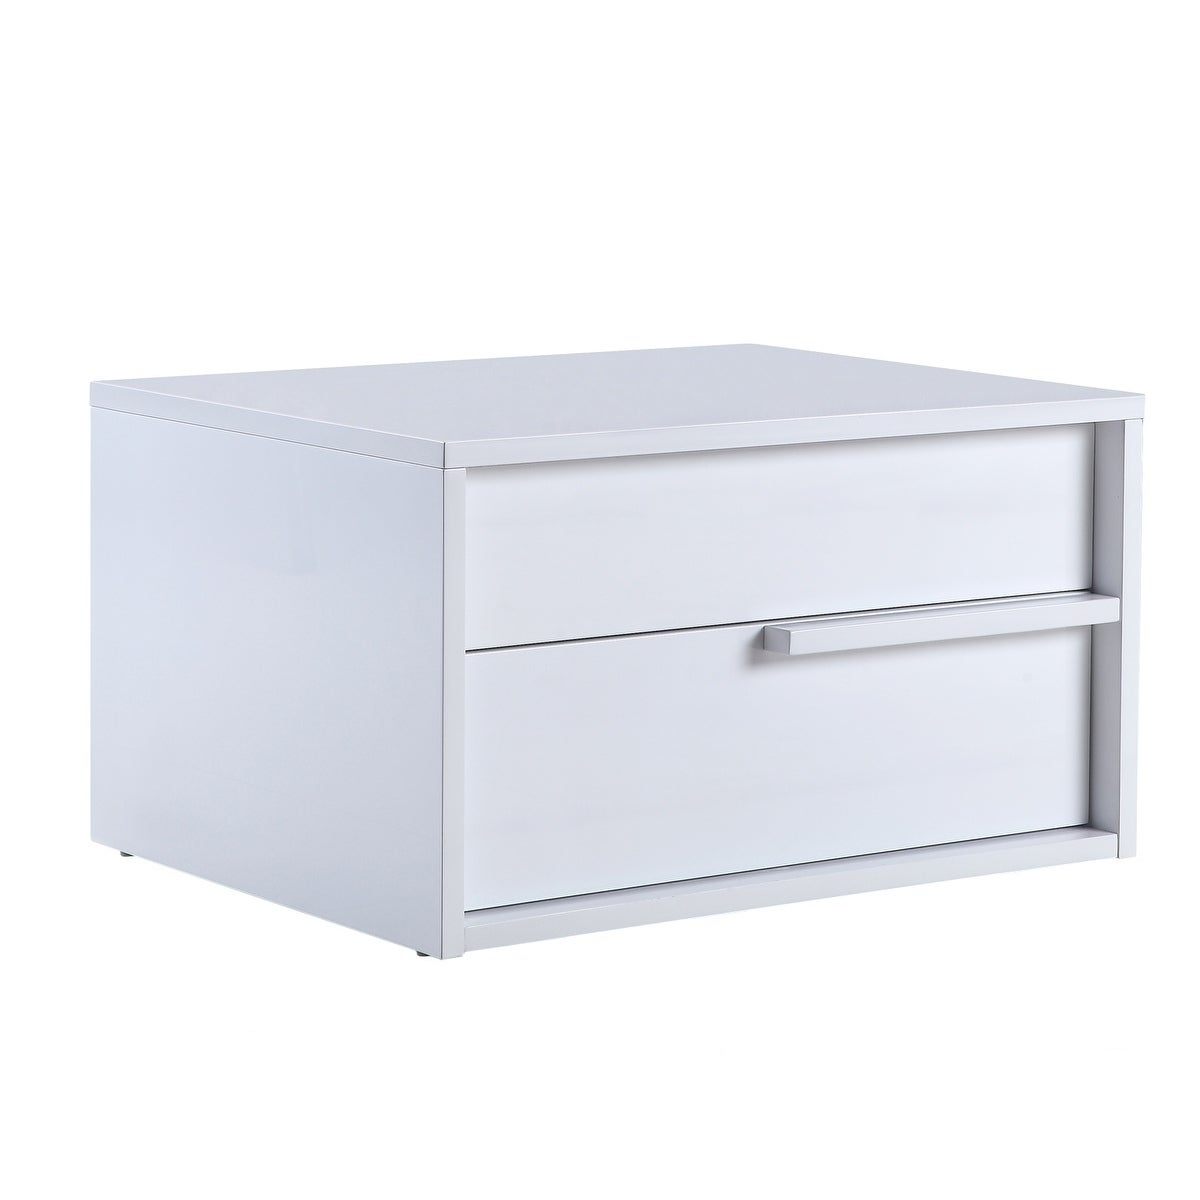 Shop dolce high gloss white lacquer right side nightstand end table by casabianca home free shipping today overstock com 19468160